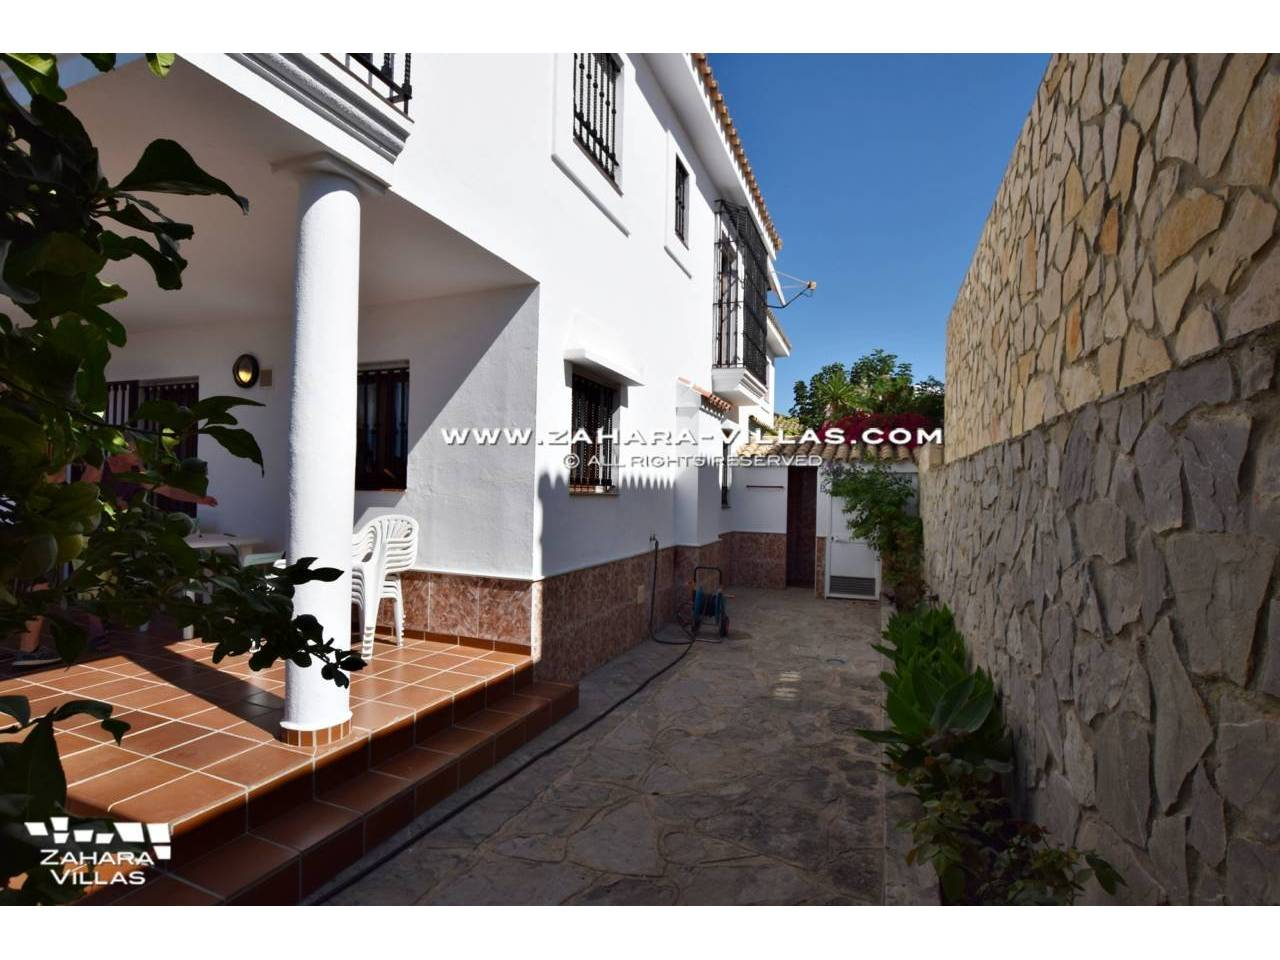 Imagen 17 de House for sale on the front beach, with sea views in Zahara de los Atunes